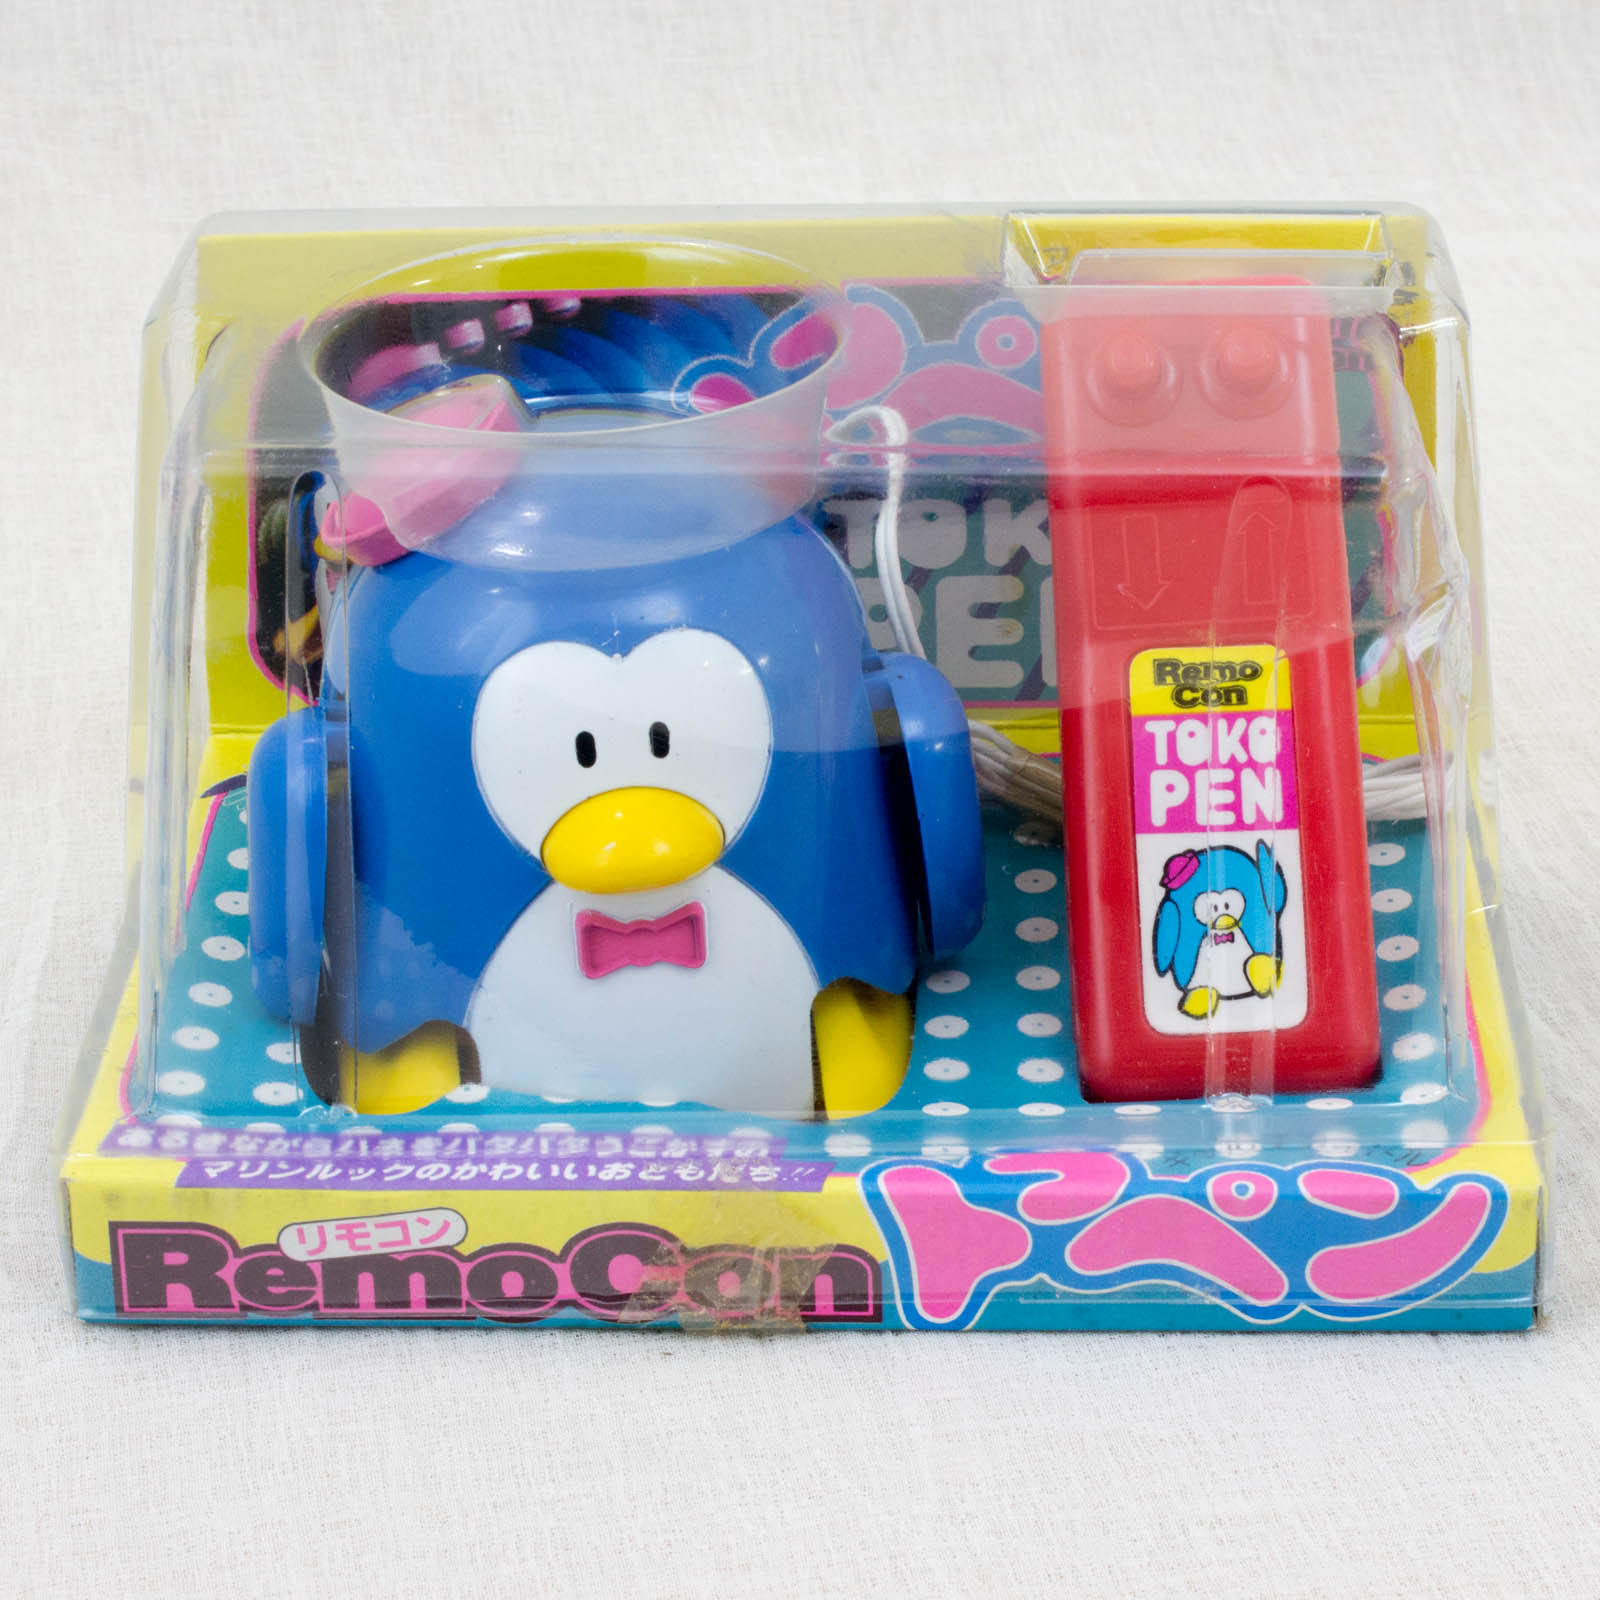 Retro Toy Penguin Moving Figure Remocon Tokopen JAPAN